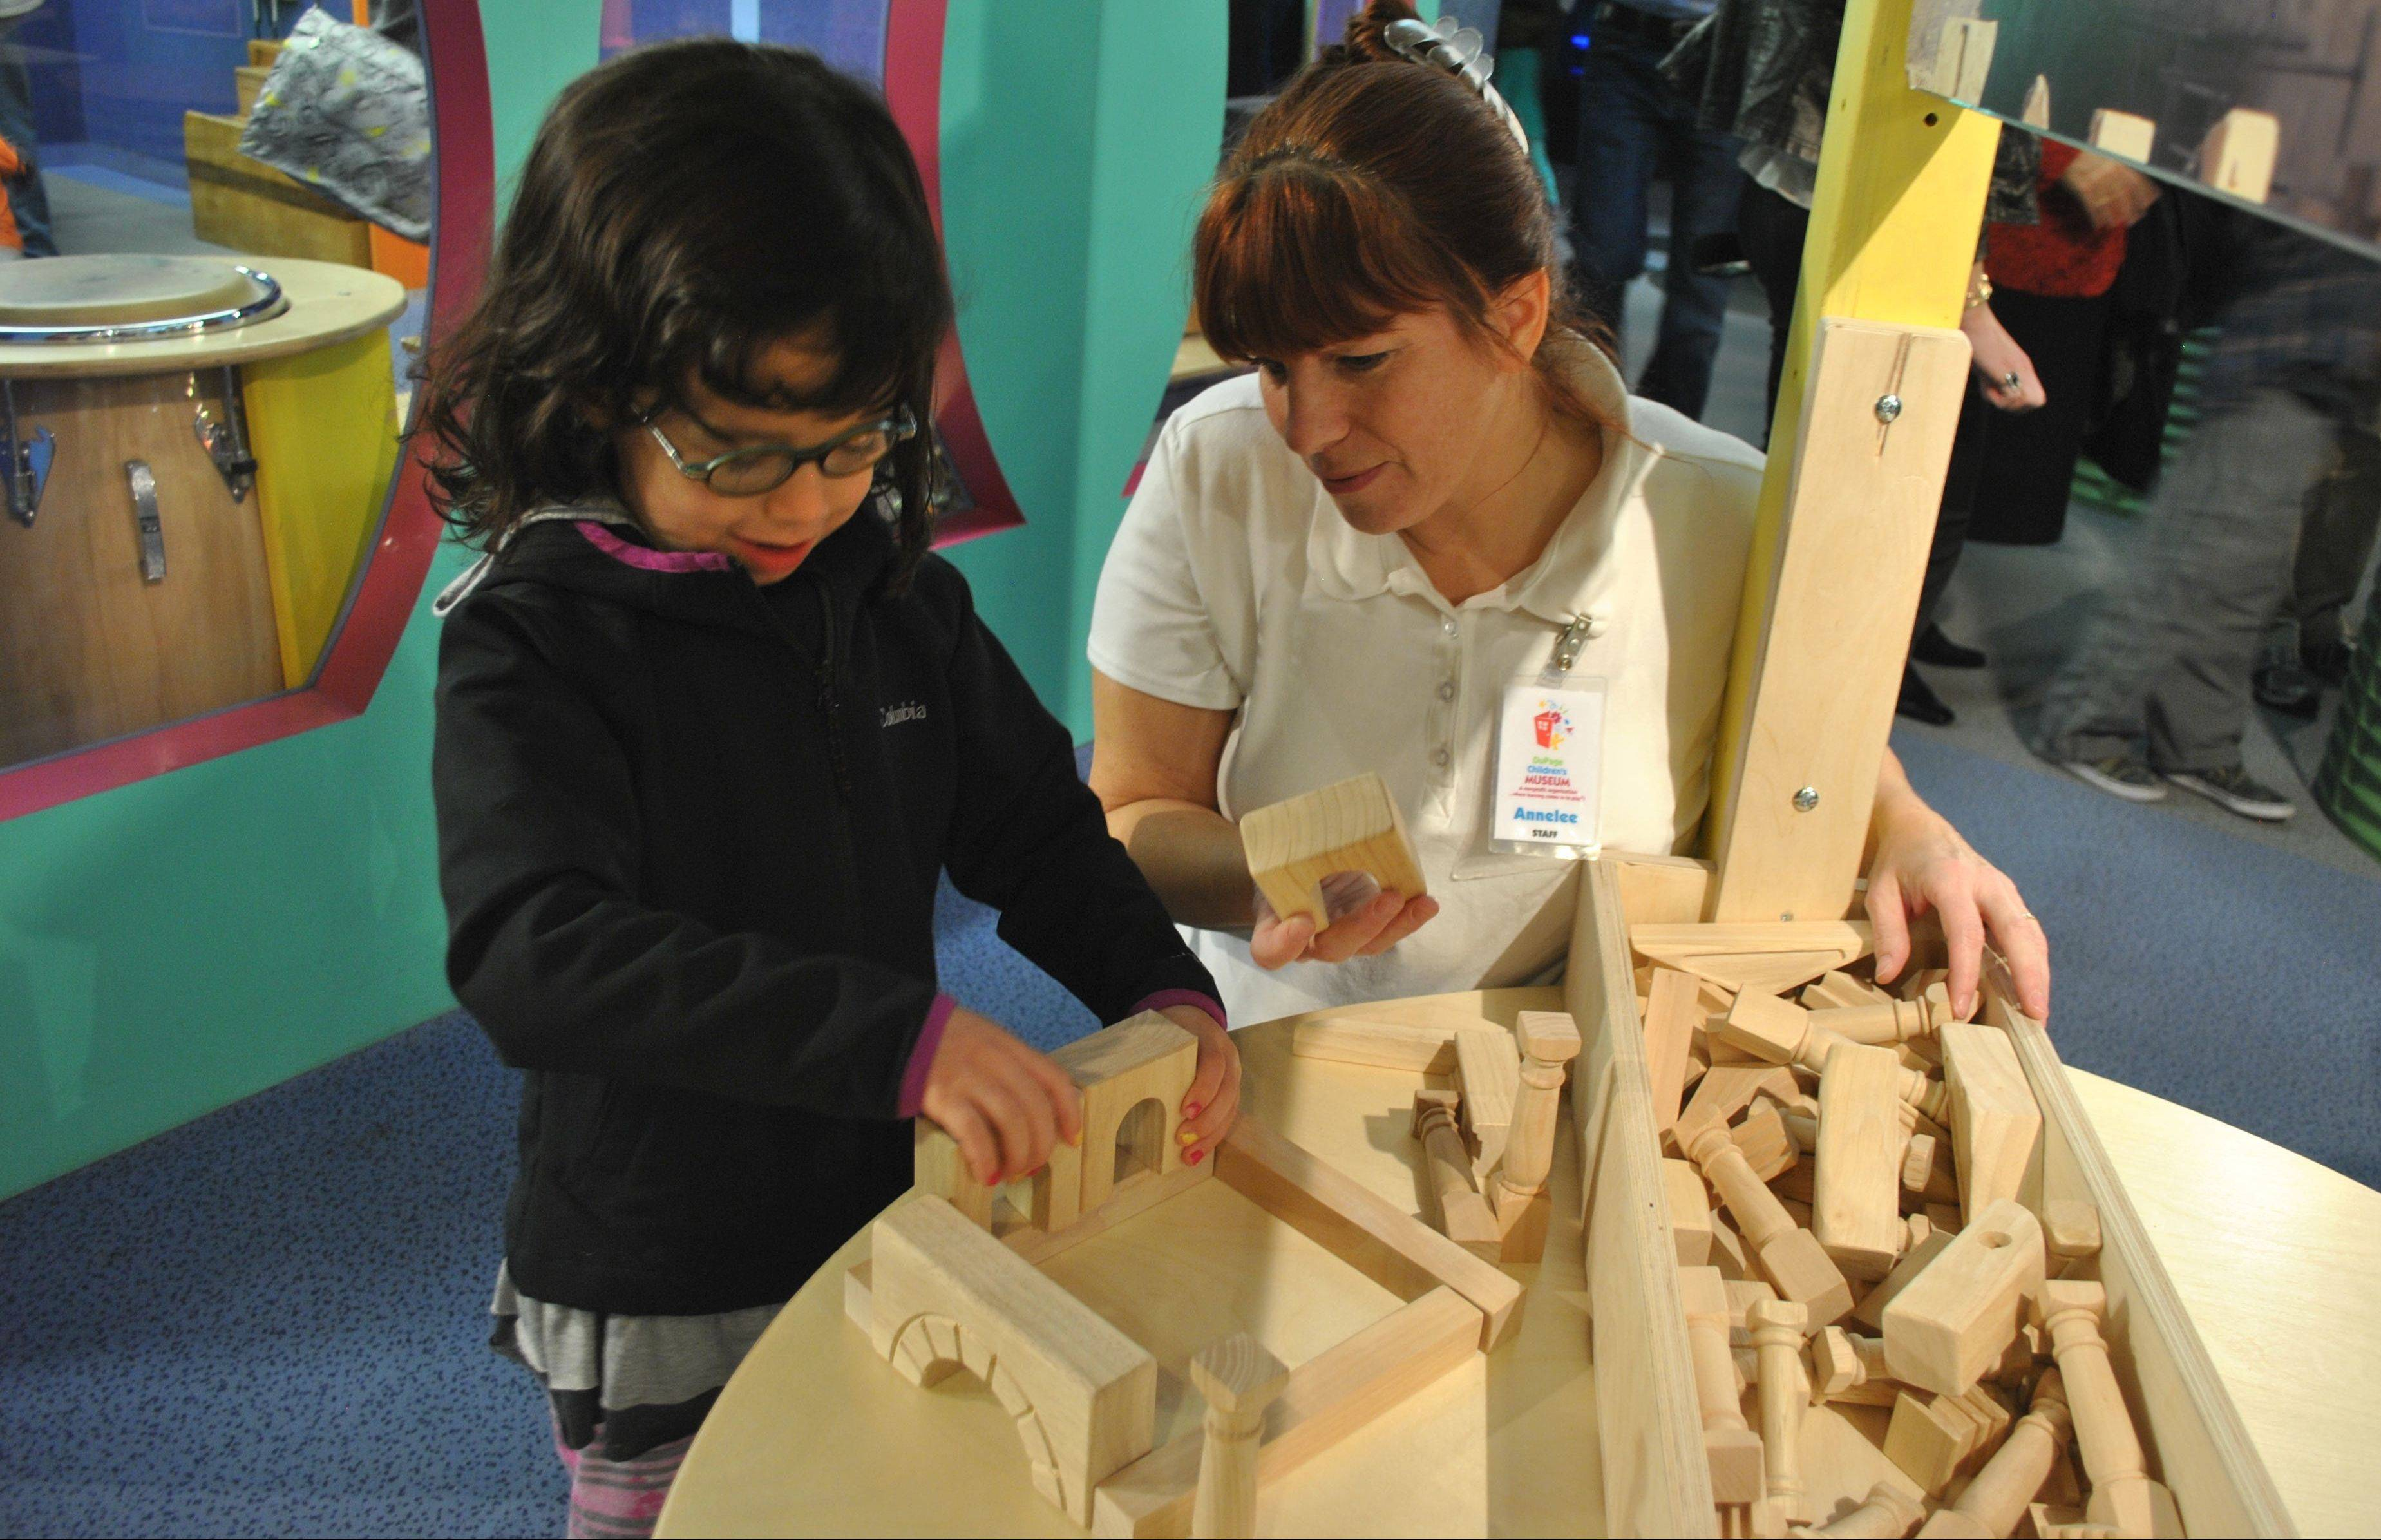 Staffers guide children as they build their own monuments at a new exhibit at the DuPage Children's Museum.